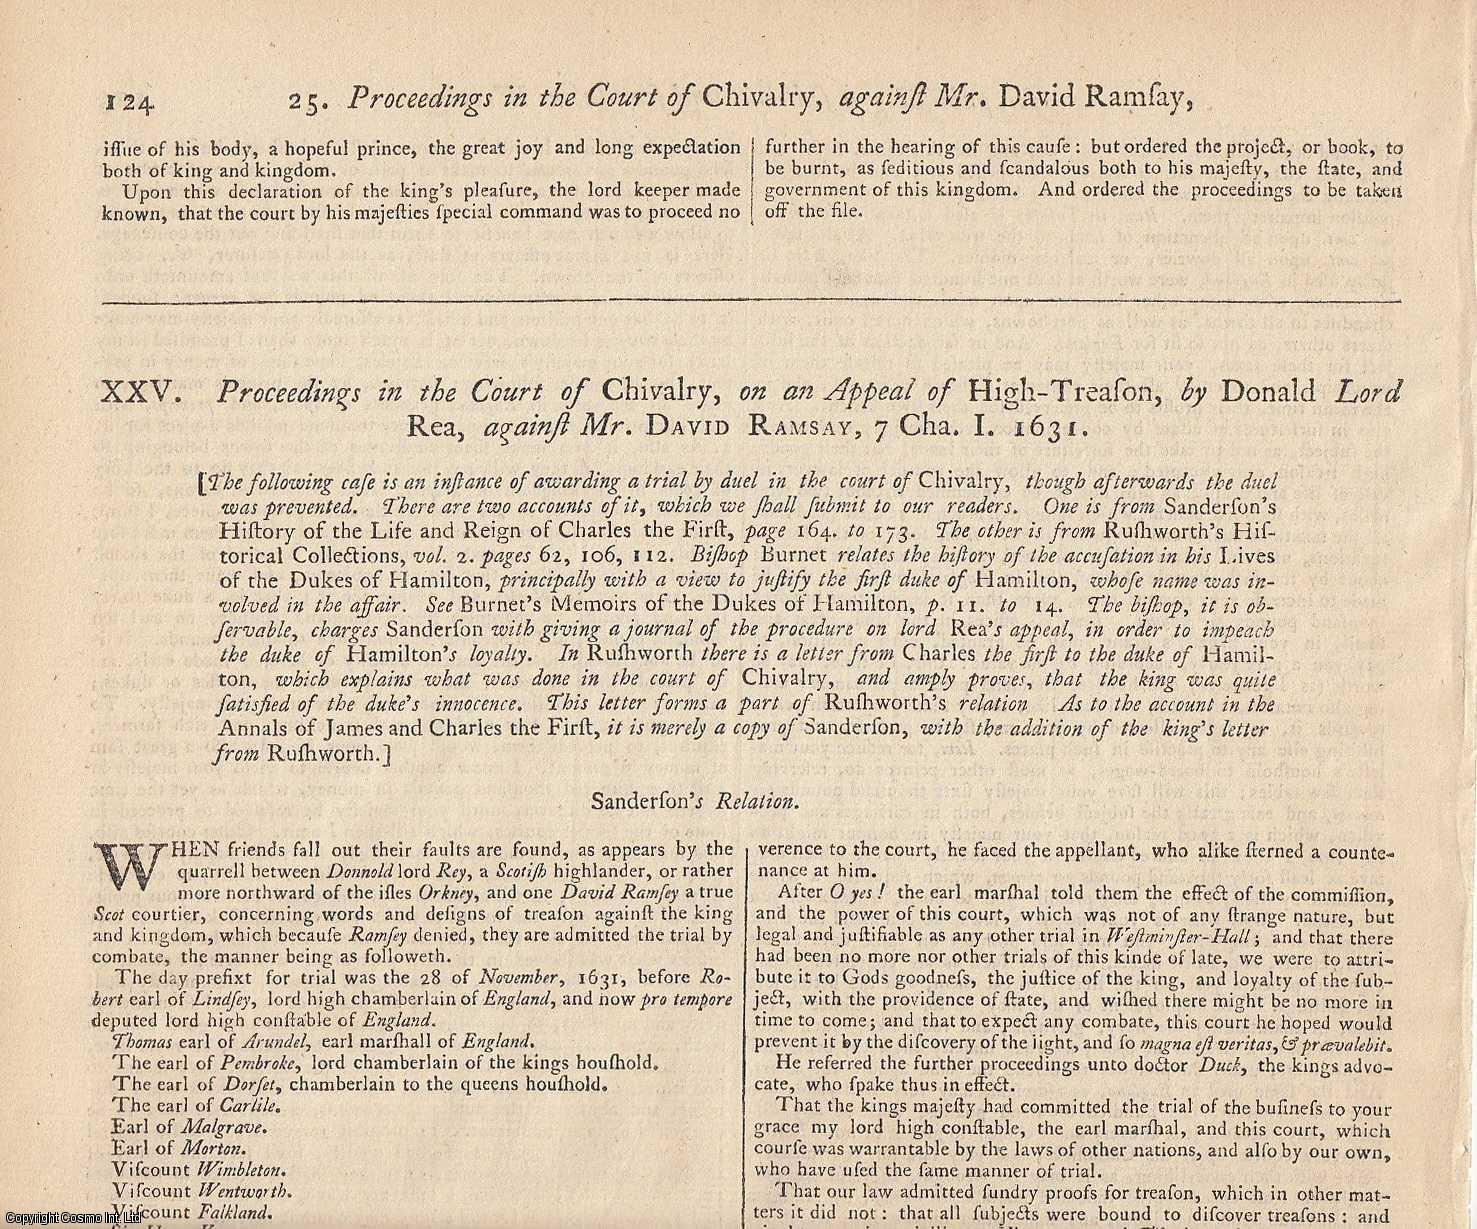 DUELLING, 1615-1631. An entertaining pair of State Trials & Reports, featuring two Duelling Trials of 1615 and 1631 in the Star Chamber and the Court of Chivalry., [Trial].